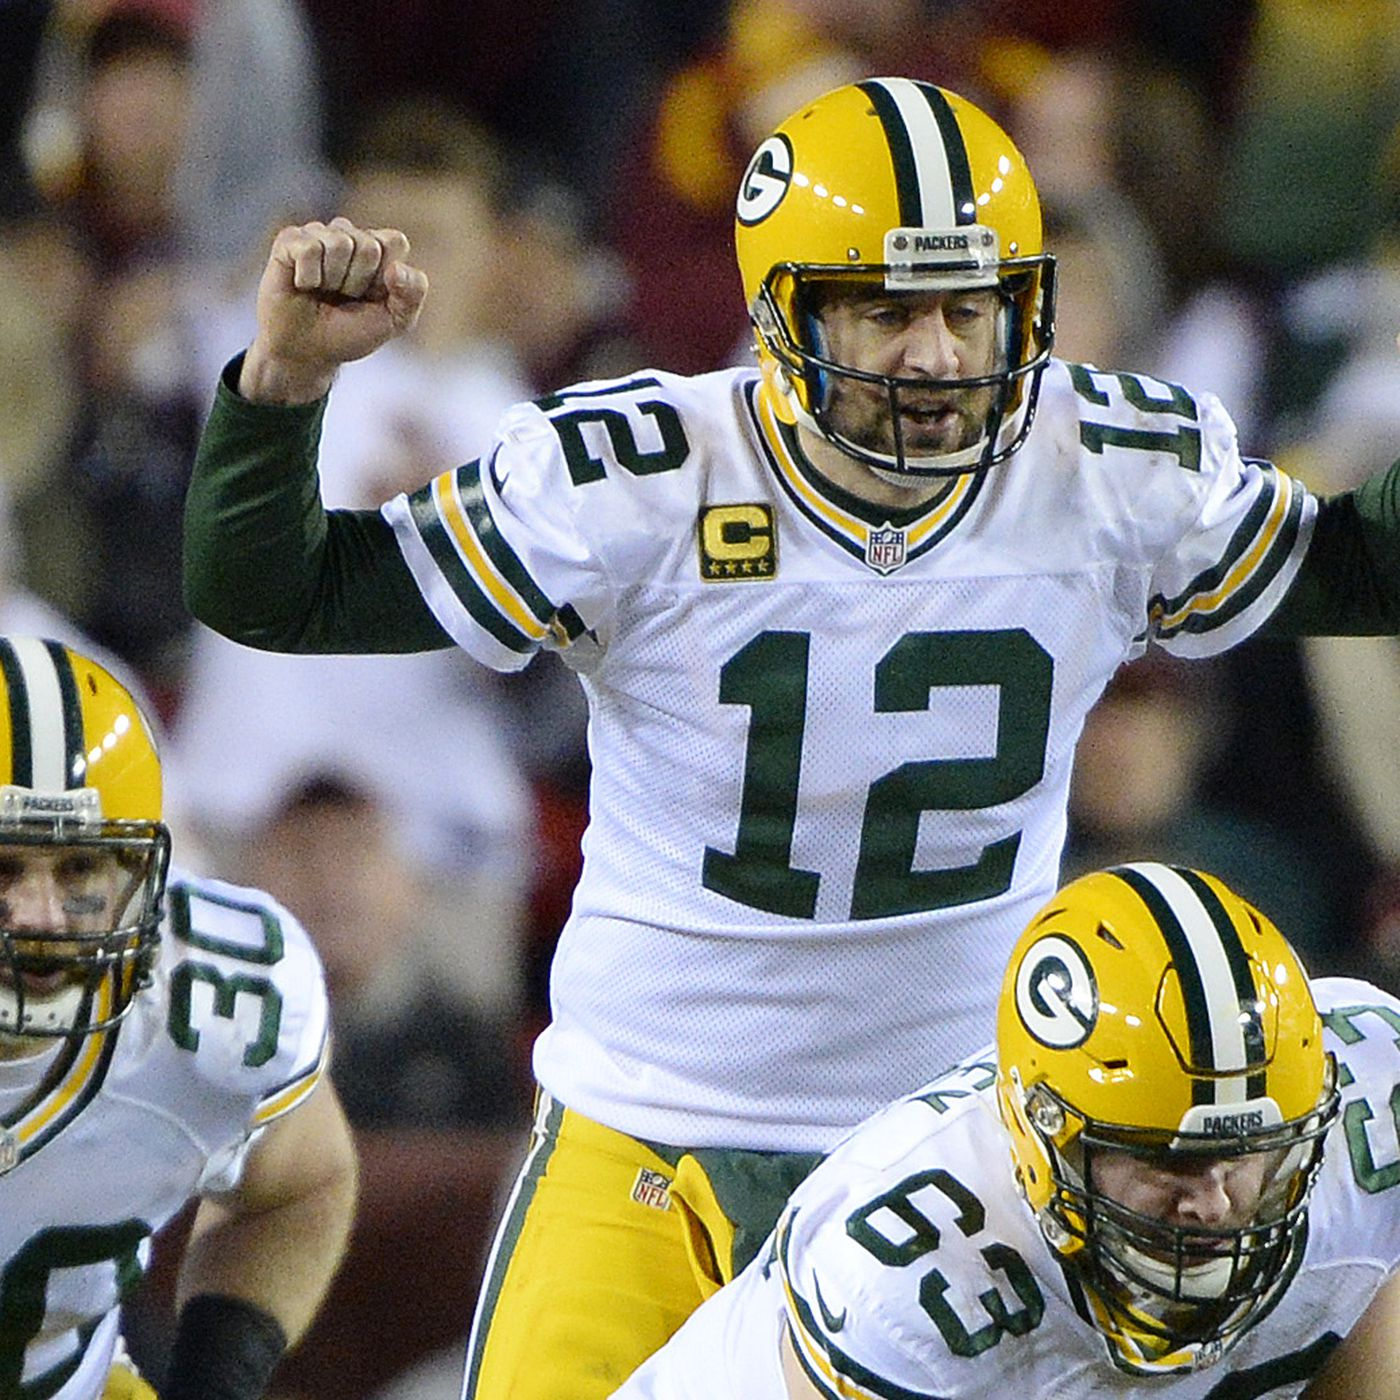 Packers Vs Washington 2016 Final Score Green Bay Wins Big Advances To Divisional Round Sbnation Com